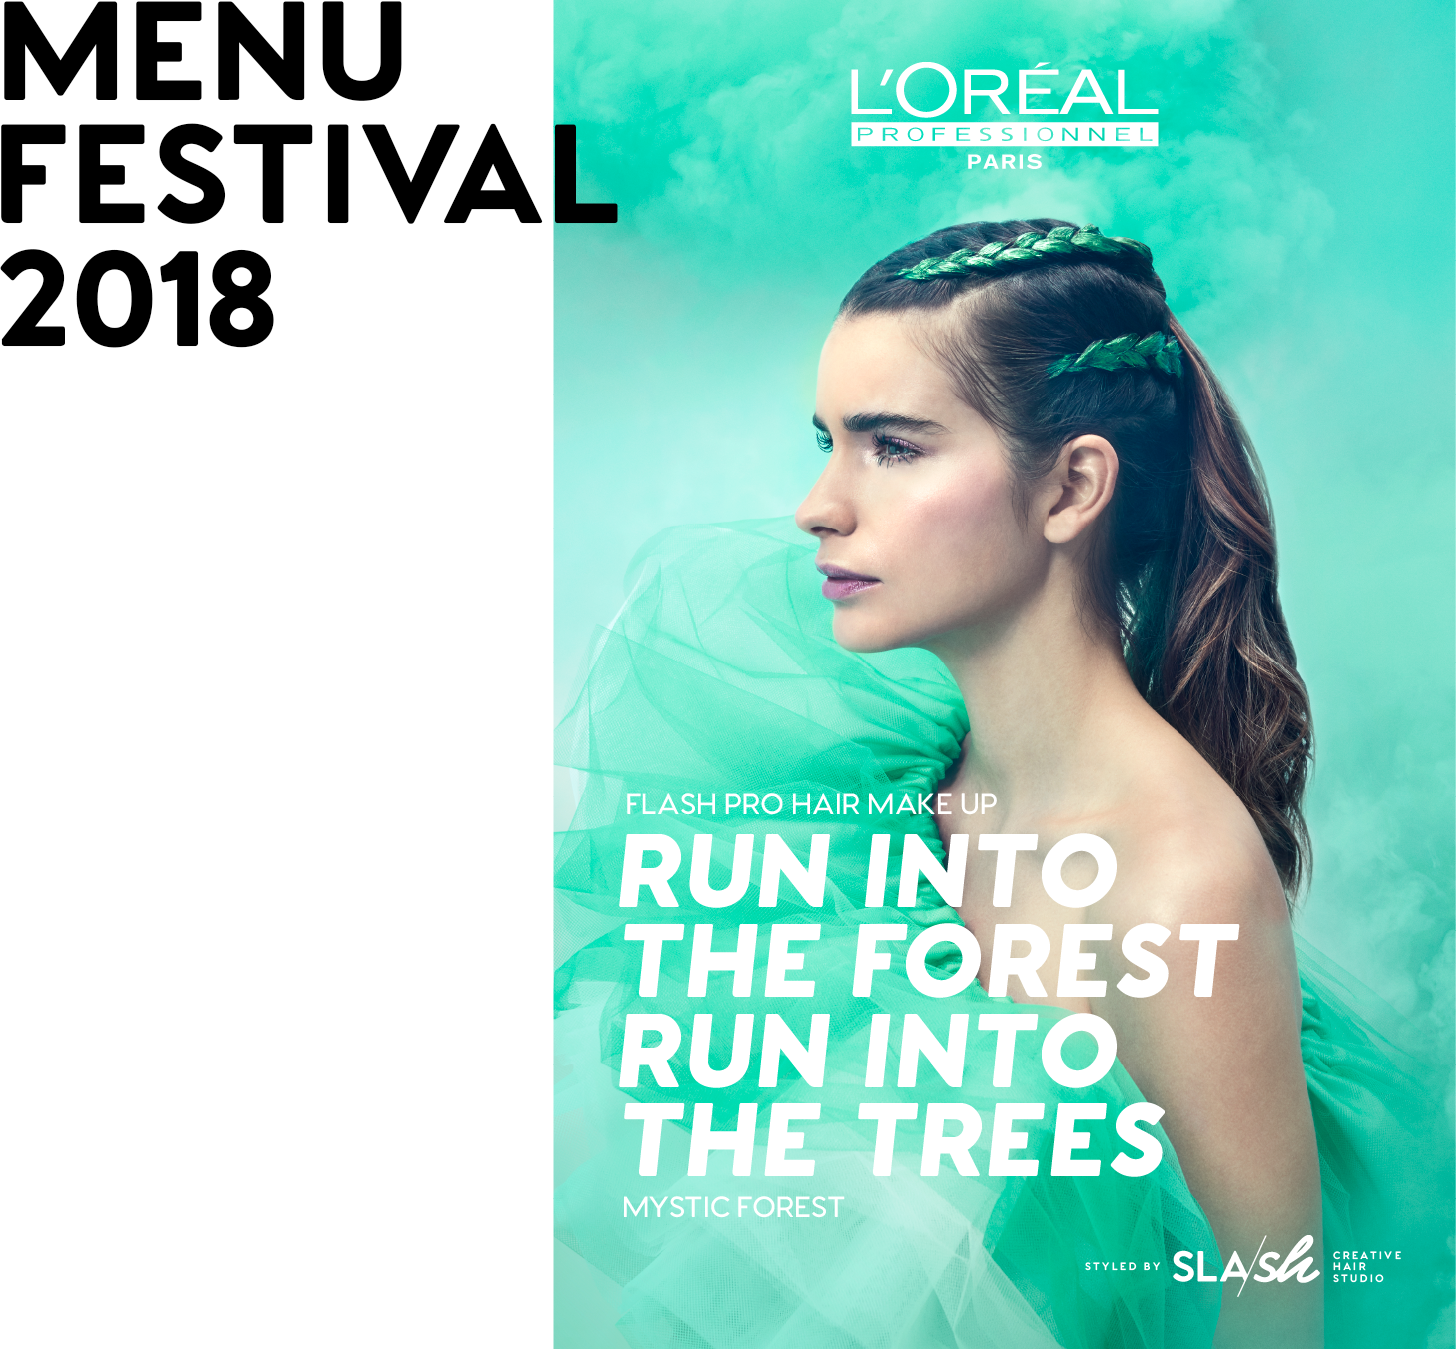 menu-festival-2018_2_run_into_the_forest_run_into_the_trees